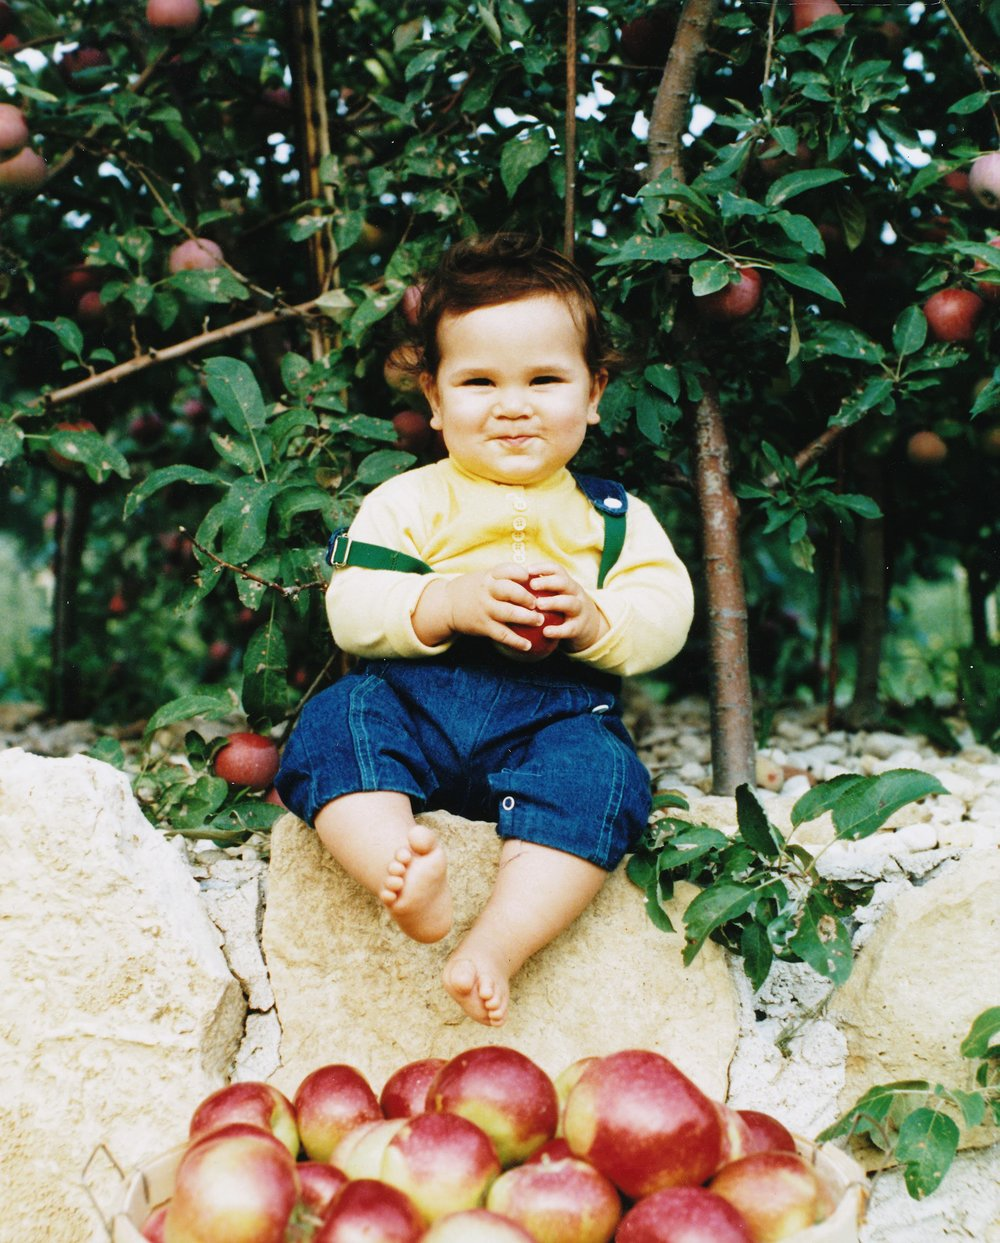 Drew Ten Eyck growing up on the Ten Eyck Orchard